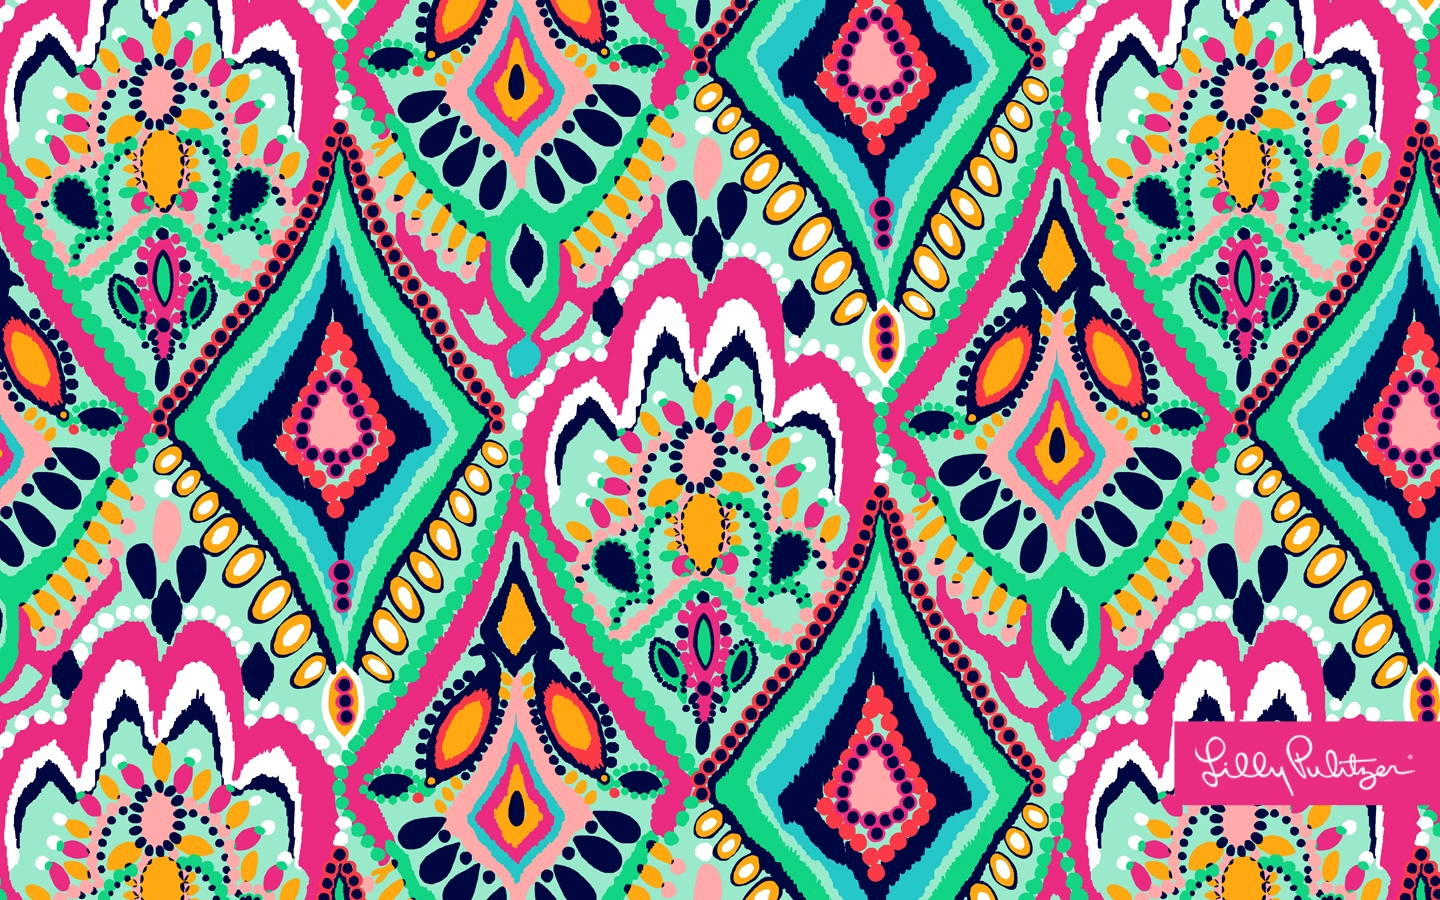 Lilly Pulitzer Backgrounds wallpaper 1440x900 45277